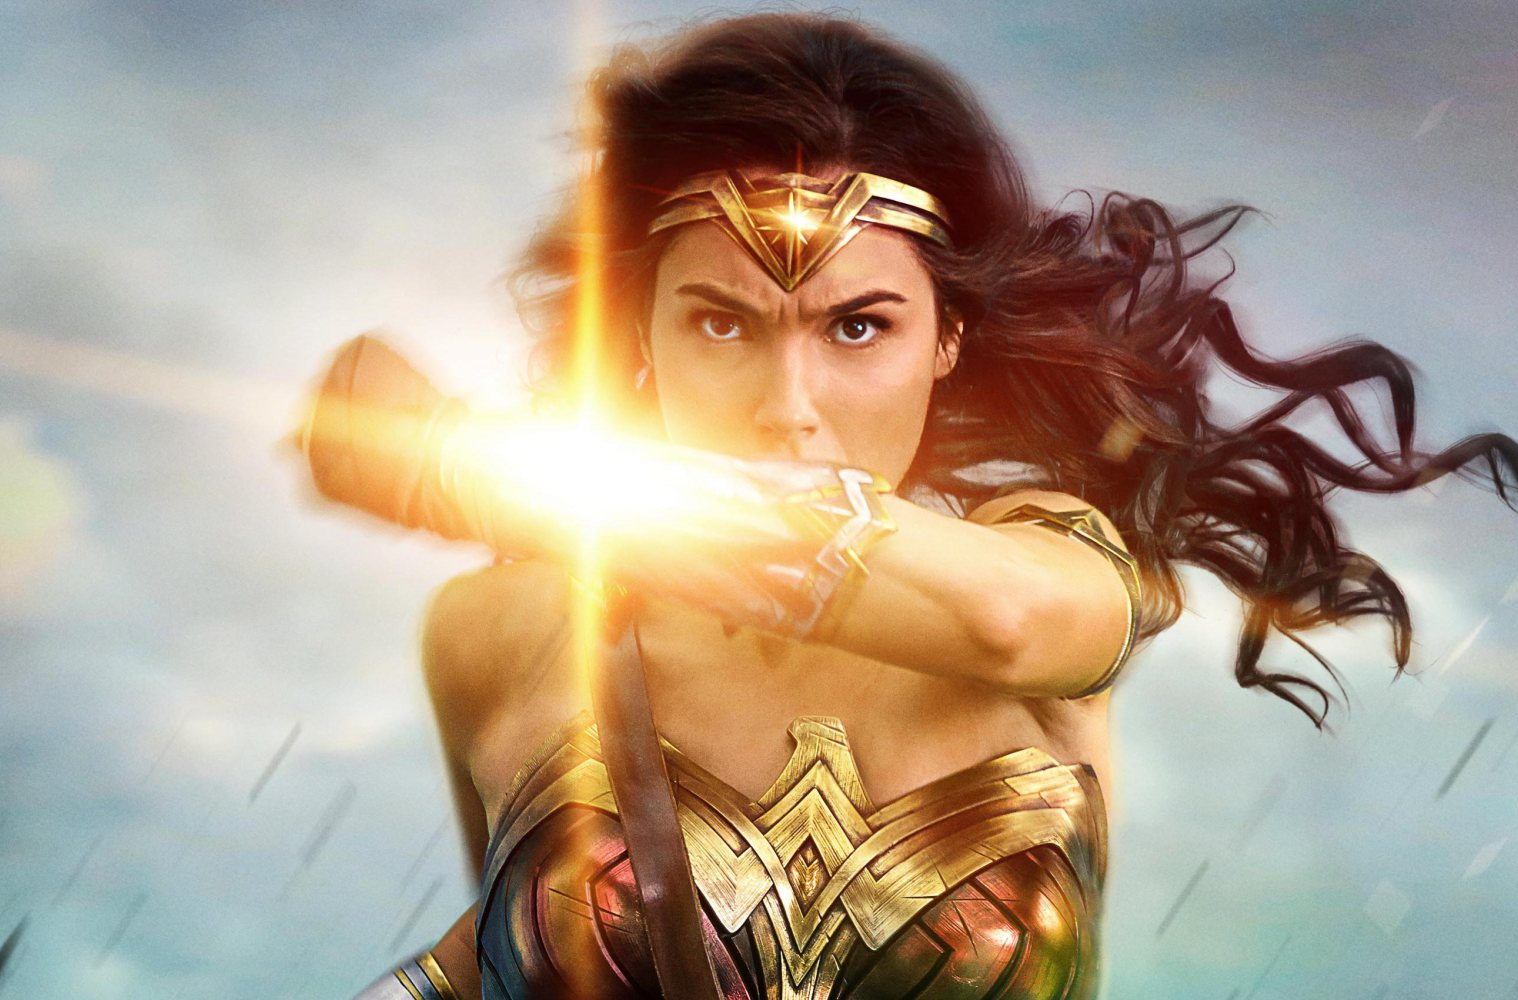 Wonder Woman: prima clip del nuovo film al cinema in giugno 2017